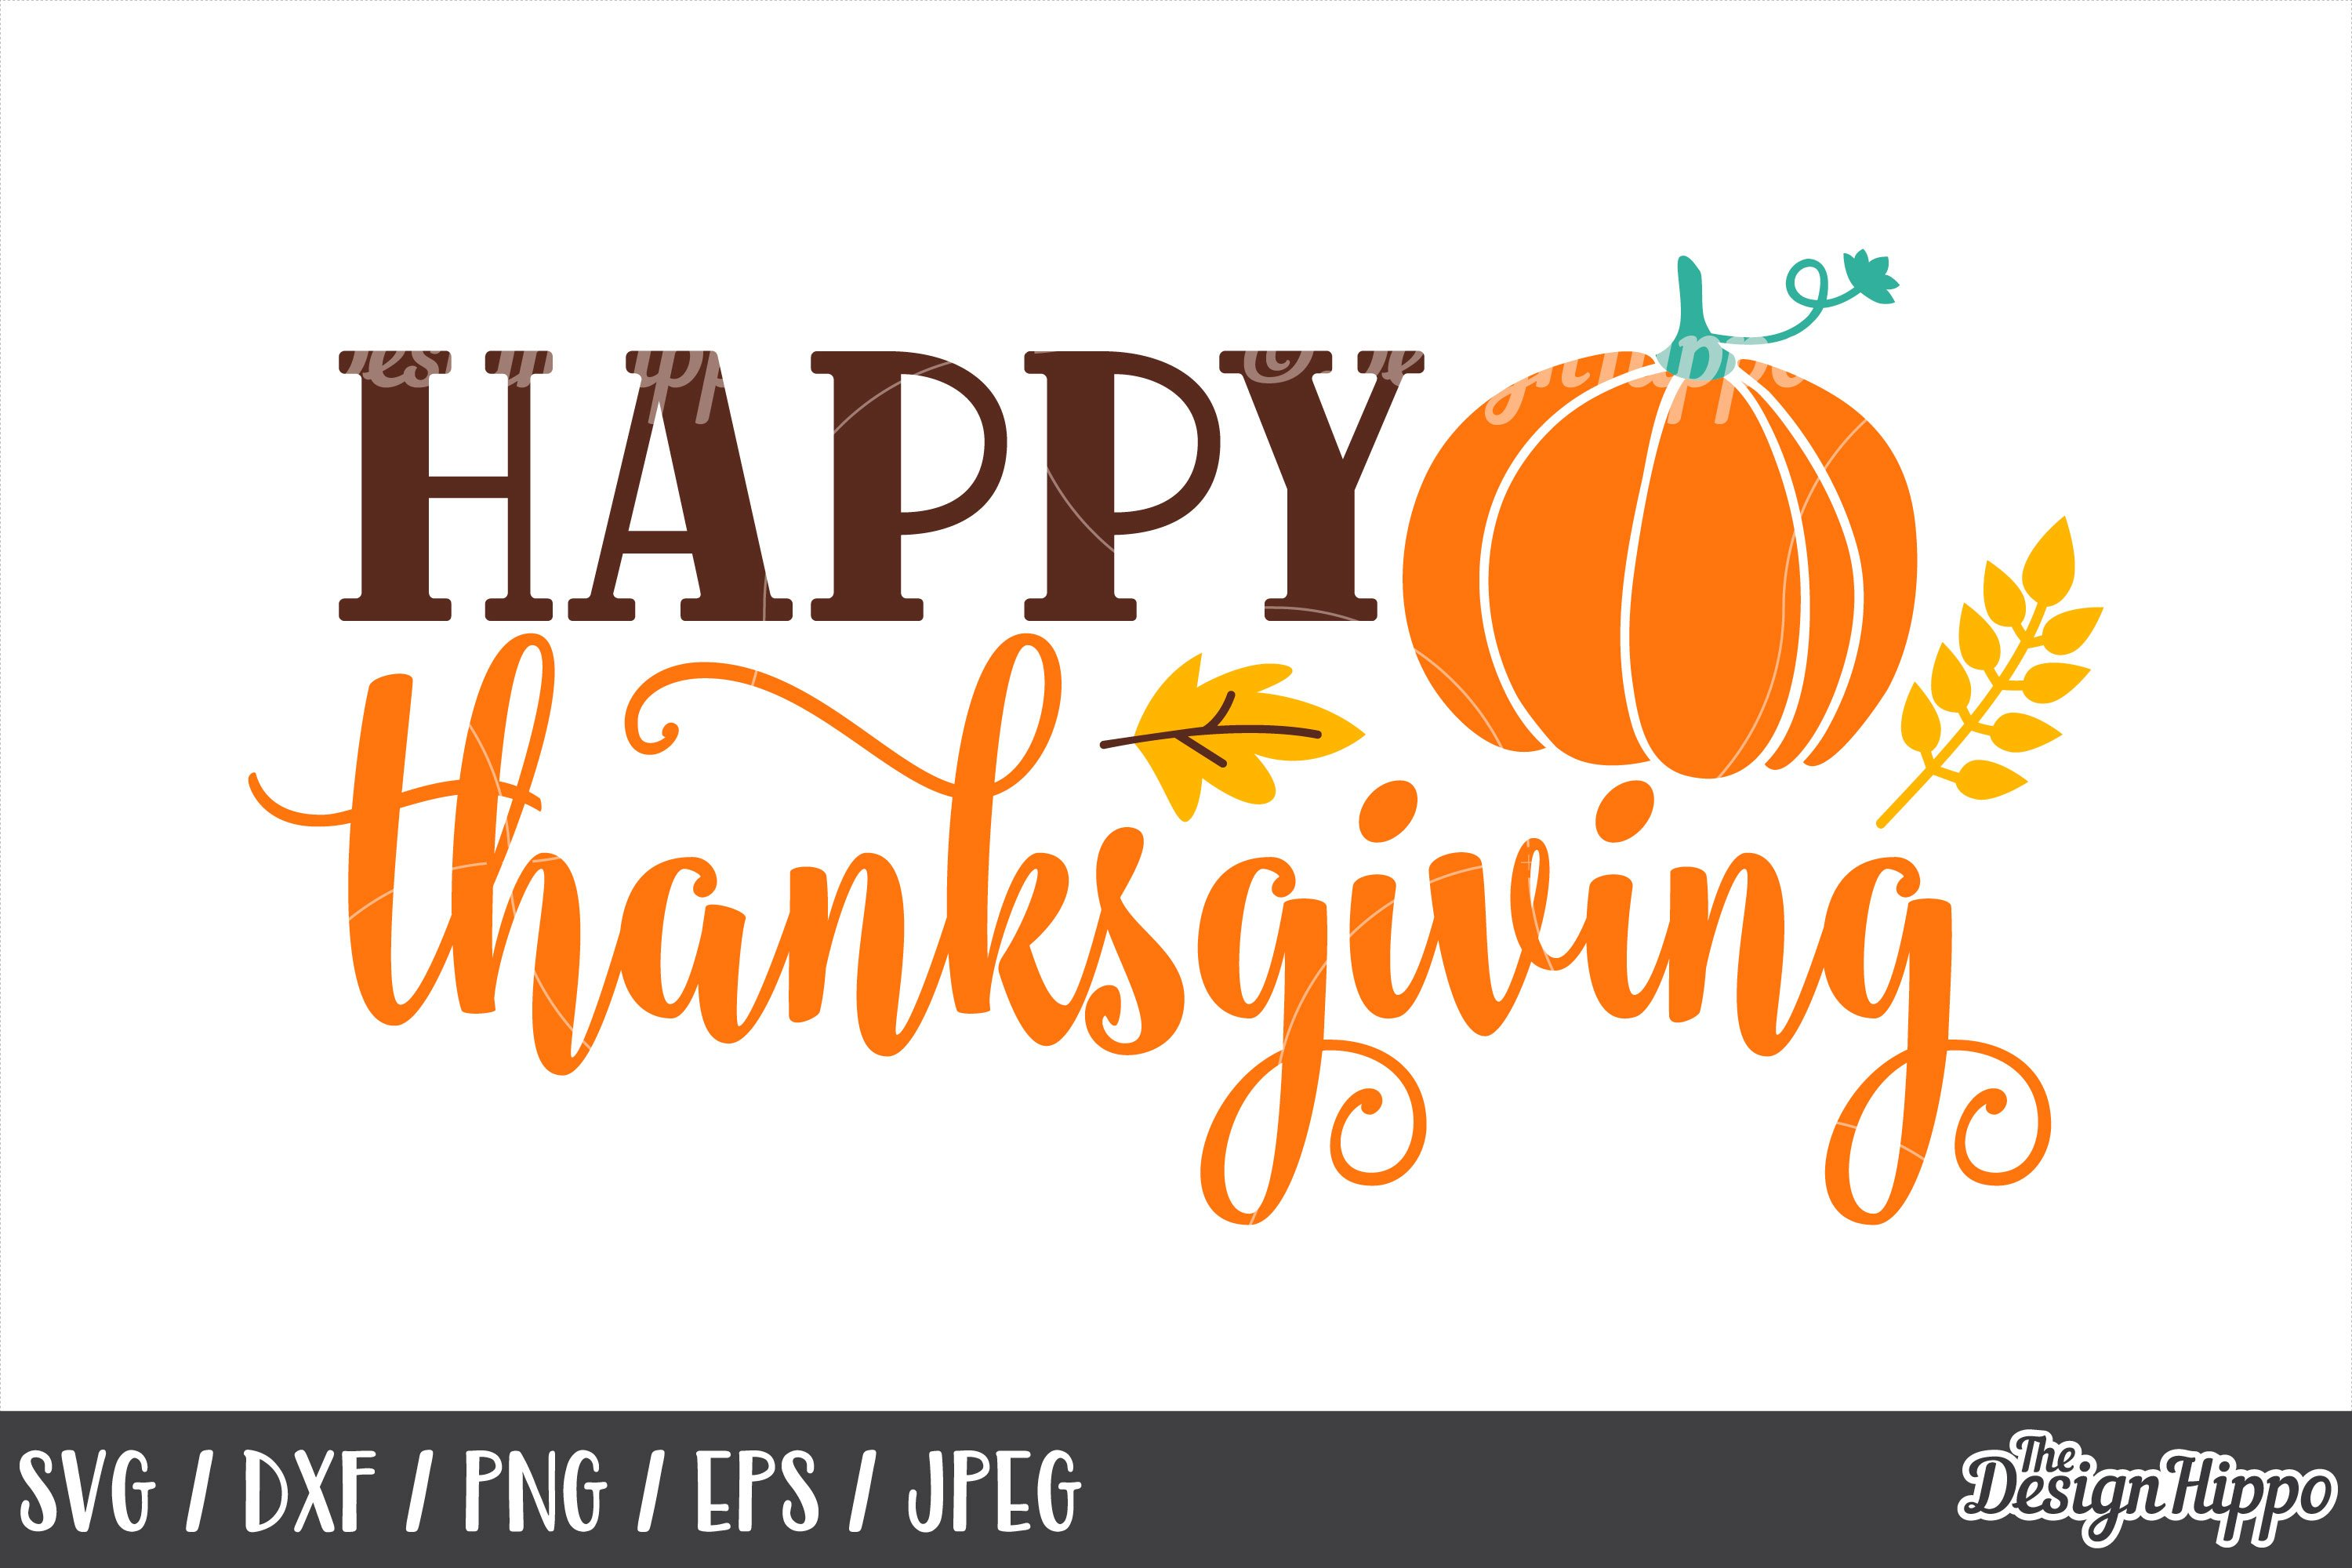 49+ Happy Thanksgiving – Svg, Eps, Dxf, Png Files For Cutting Machines SVG